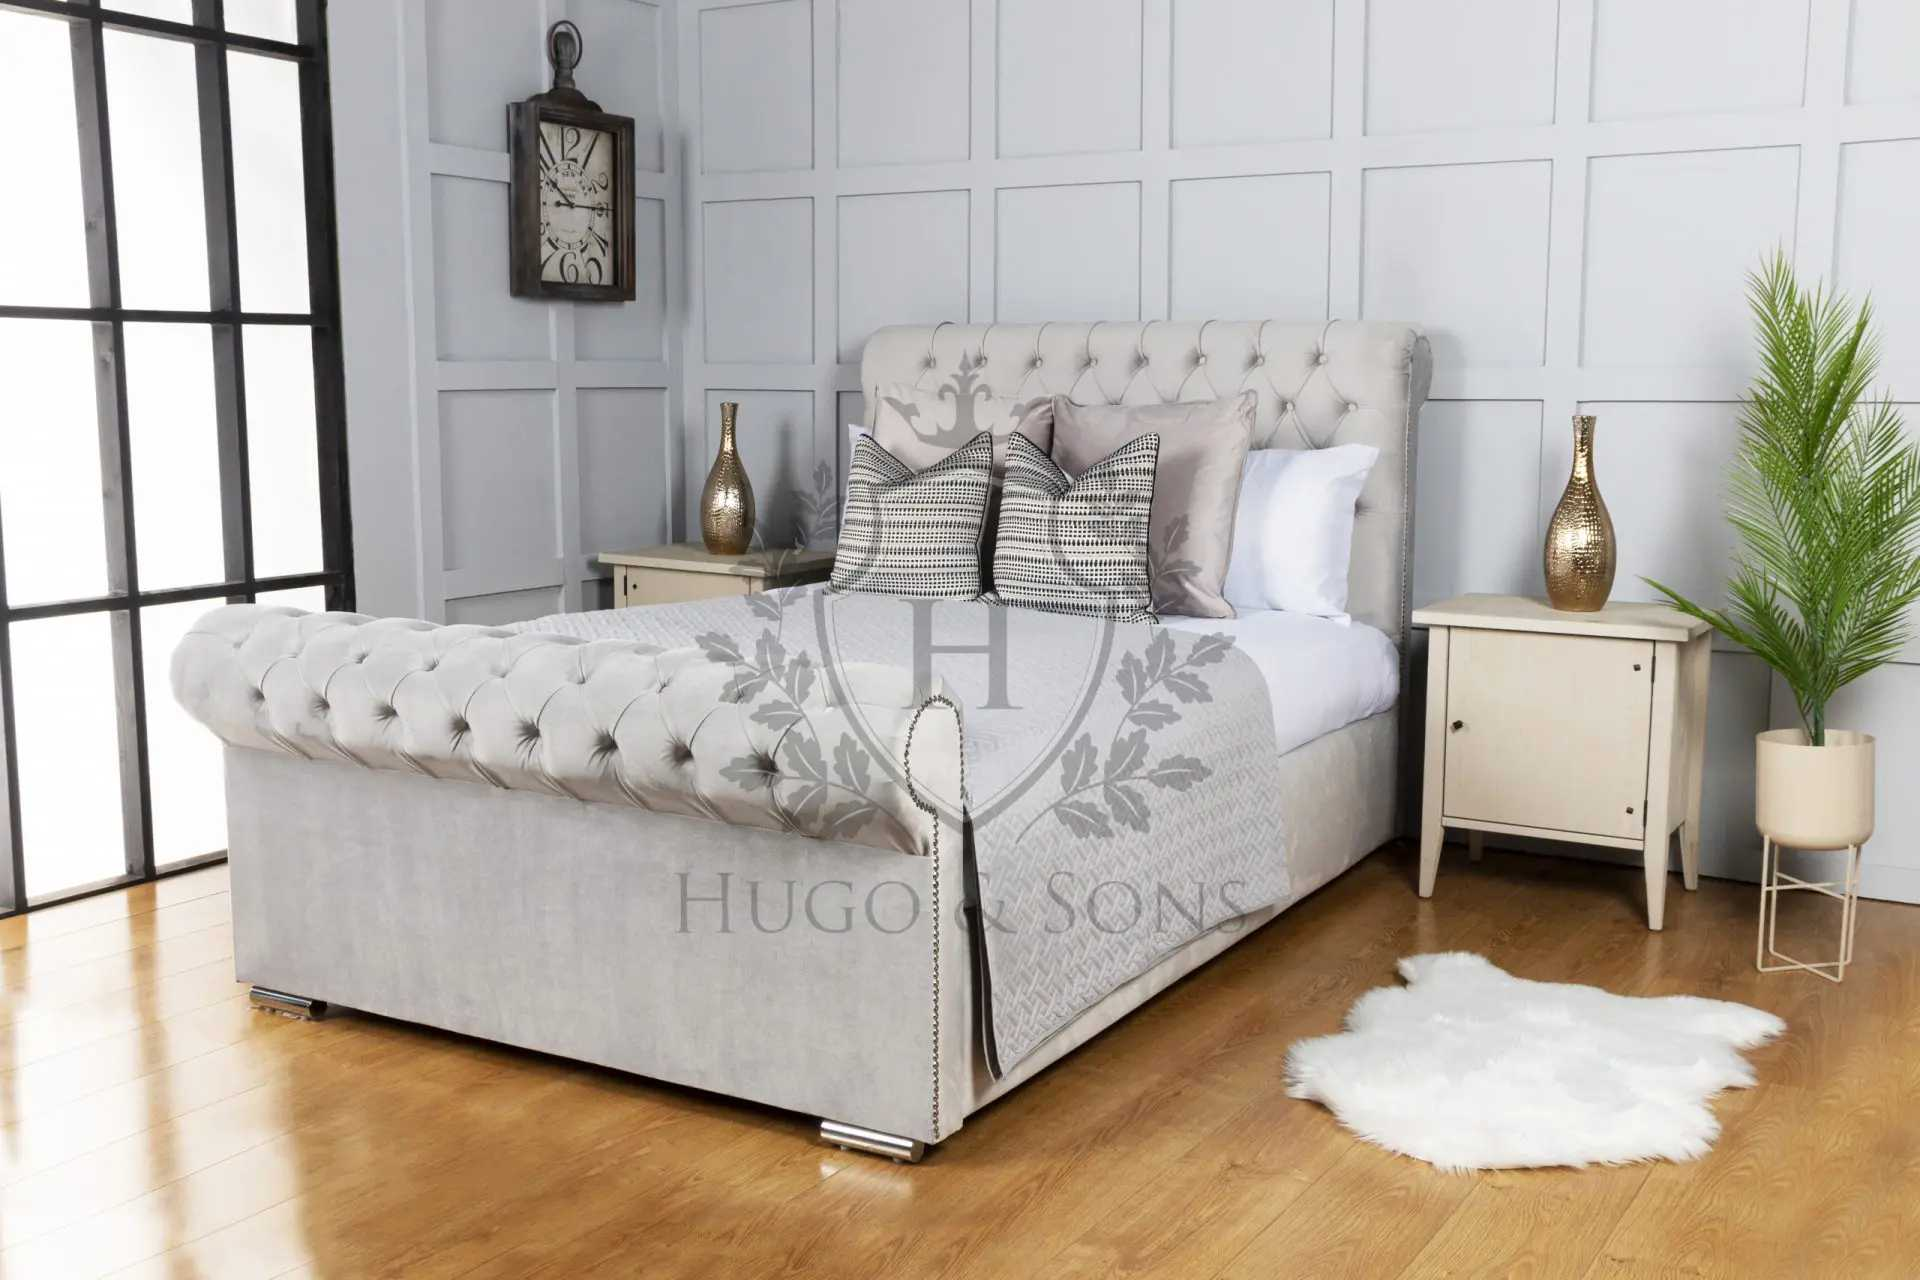 Hugo & Son's Luxurious Handmade Sleigh Beds Are Available Just in Time for Christmas